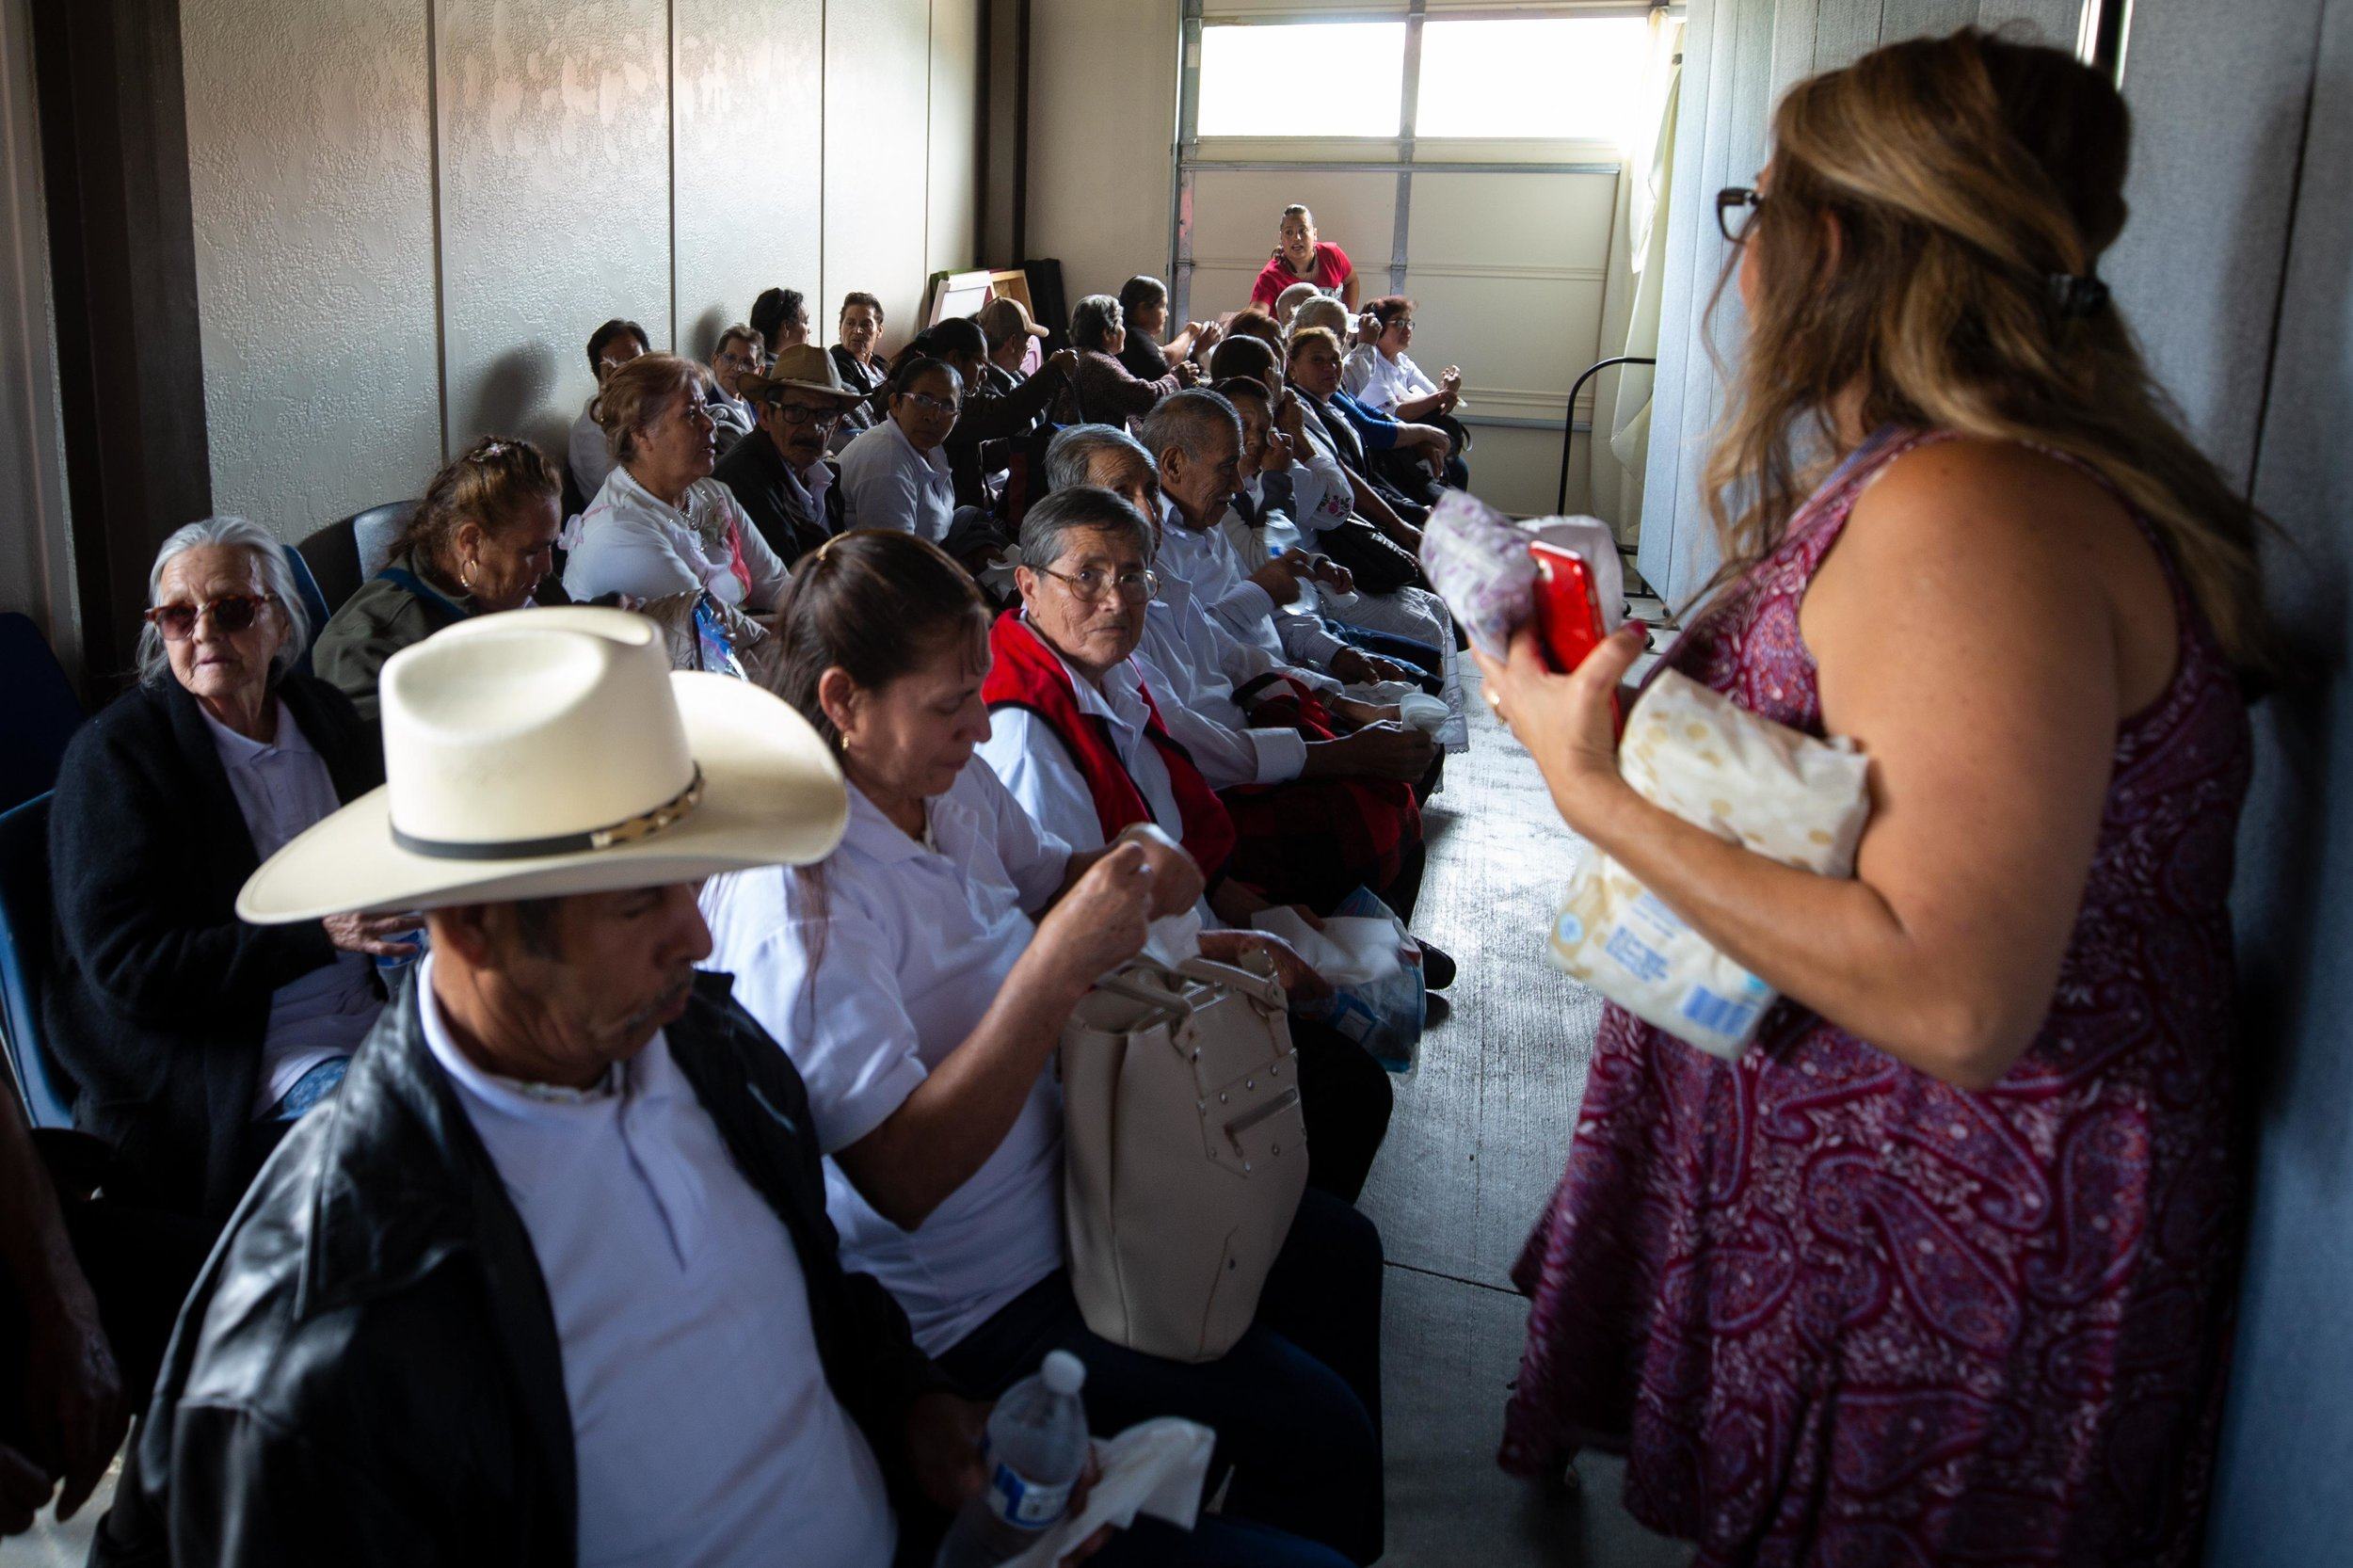 ROUND ROCK, TX. August 10, 2018. Mexican parents wait to be reunited with their children, whom they have not seen in more than a decade. The Consulate General of Mexico in Austin and the government of the State of Michoacán assisted parents with applying for tourist visas that will last ten years. A program called Palomas Mensajeras (homing pigeons) came to the Austin area to reunite the families. Montinique Monroe for KUT News